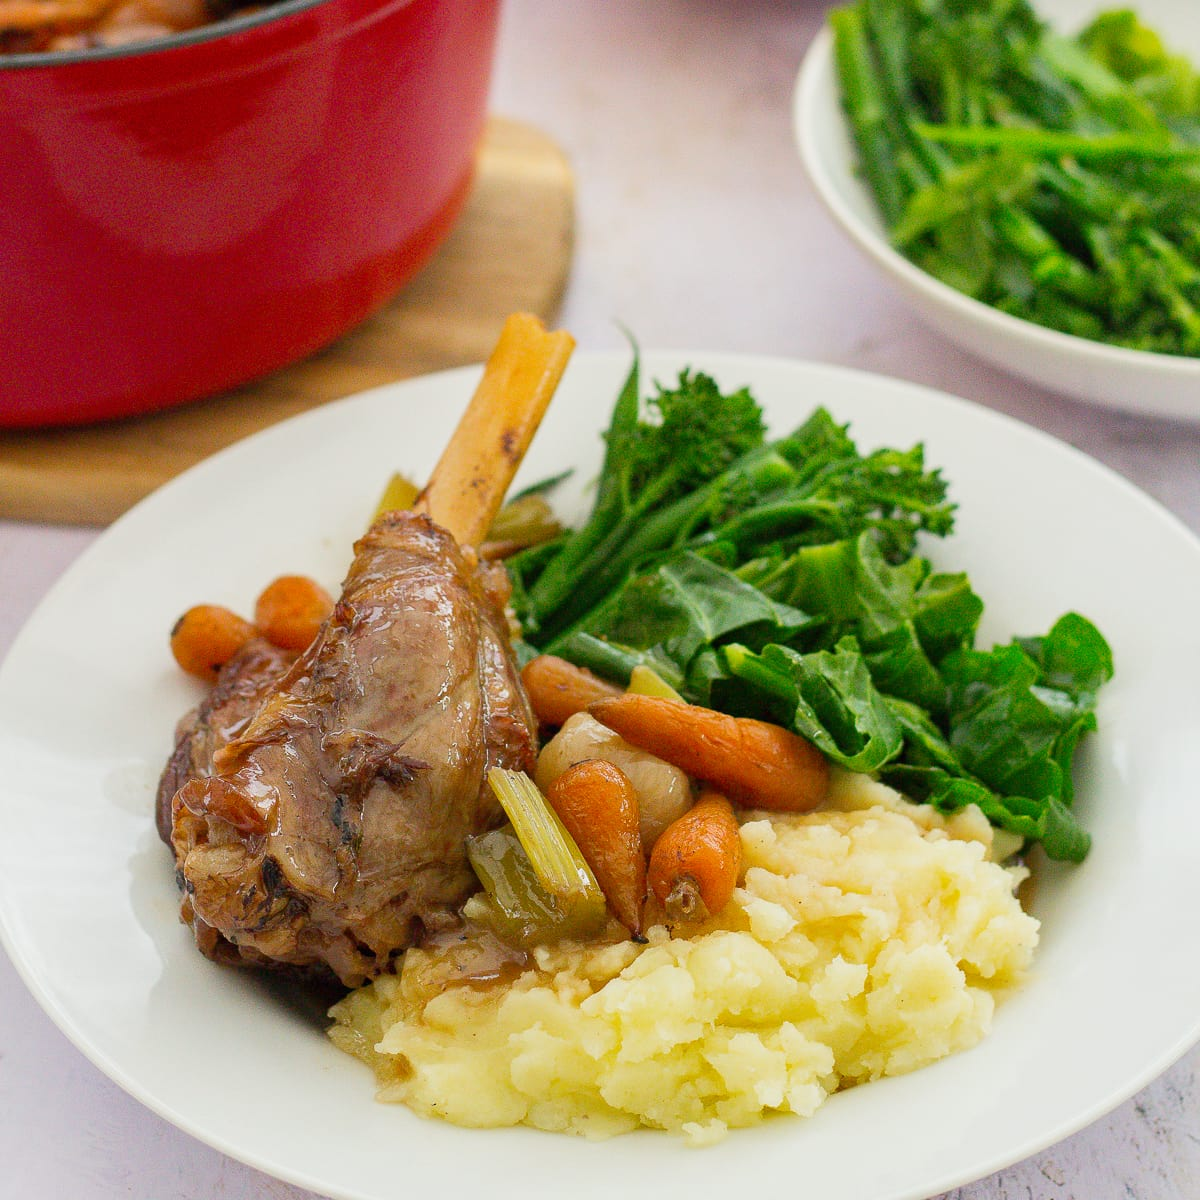 Slow Cooked Lamb Shanks with Red Wine Gravy